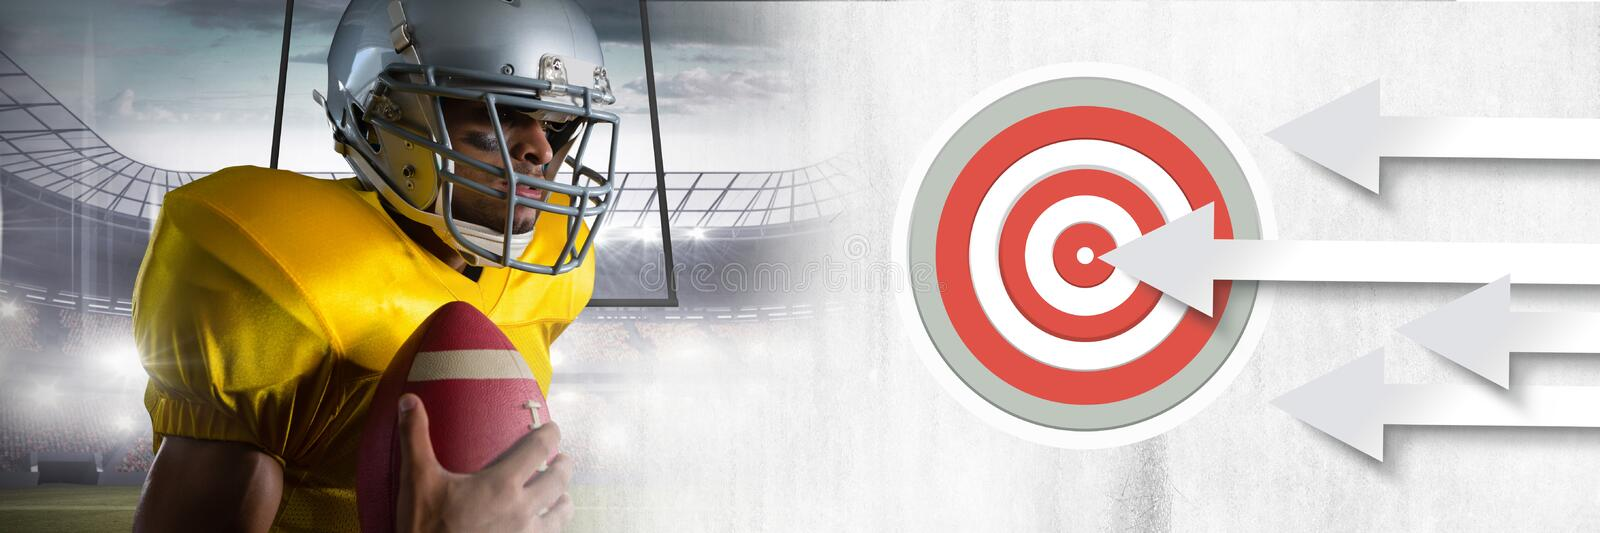 American football player with stadium transition and arrows pointing to target stock photography